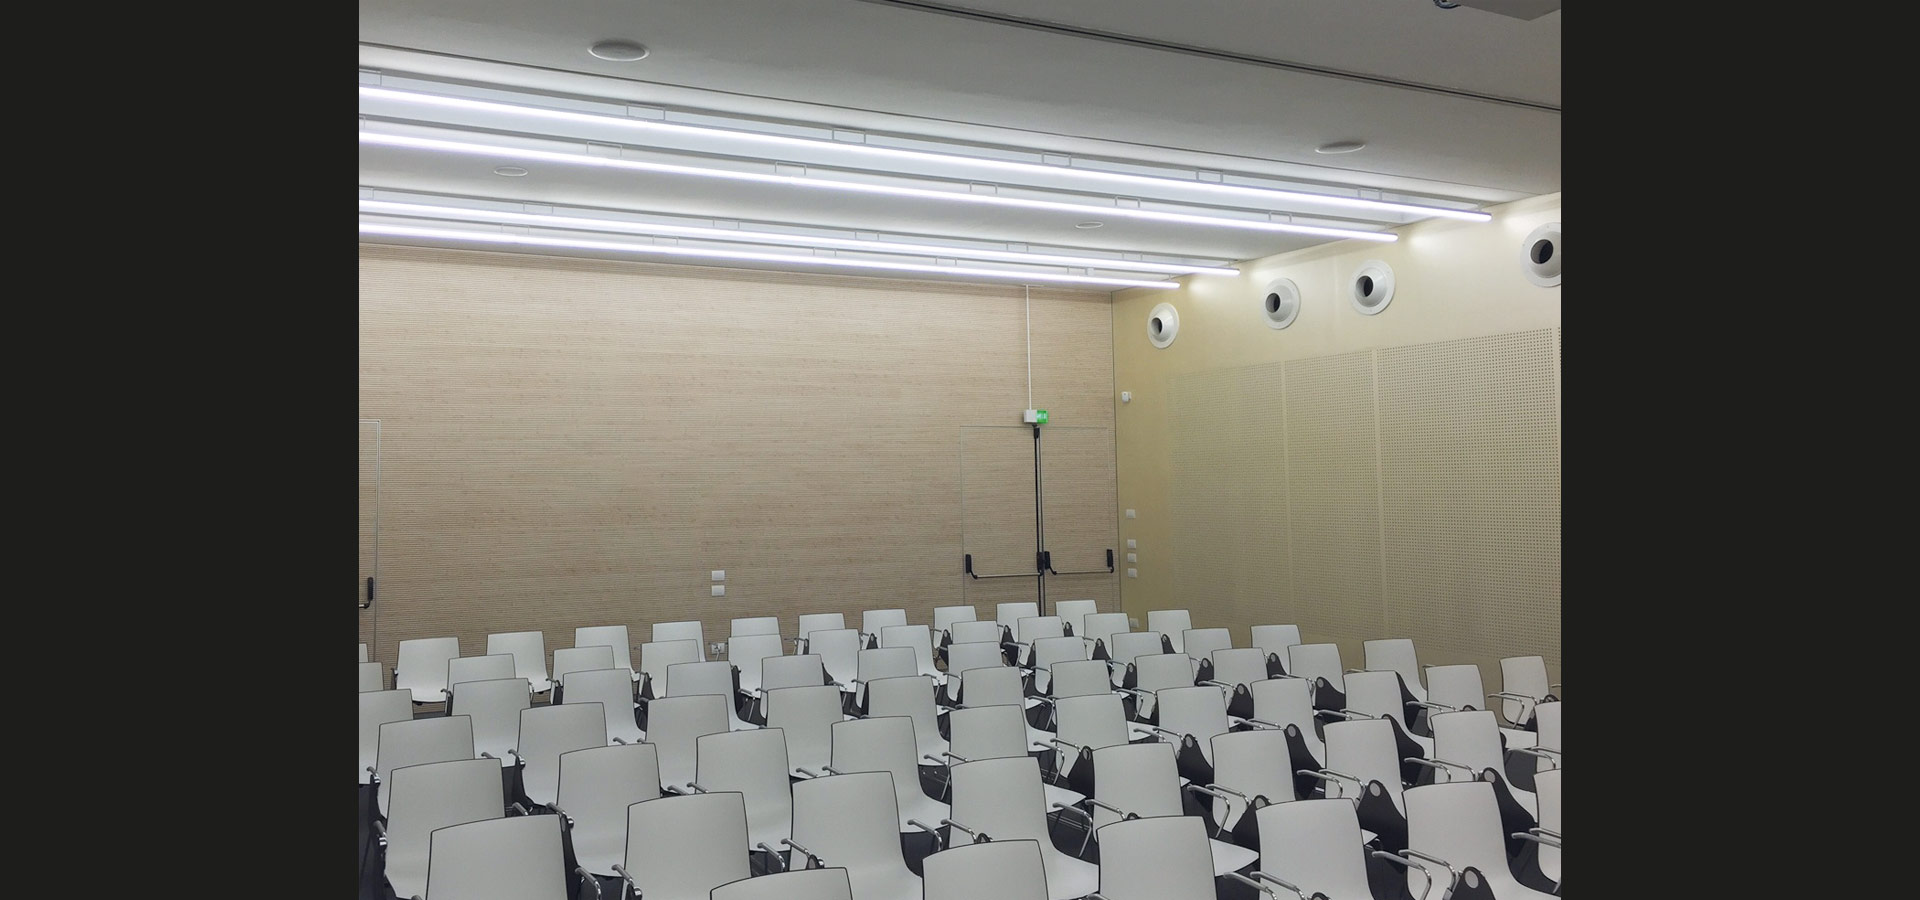 Luxsystem minimalistic office lighting tunable white training room SL 20.3